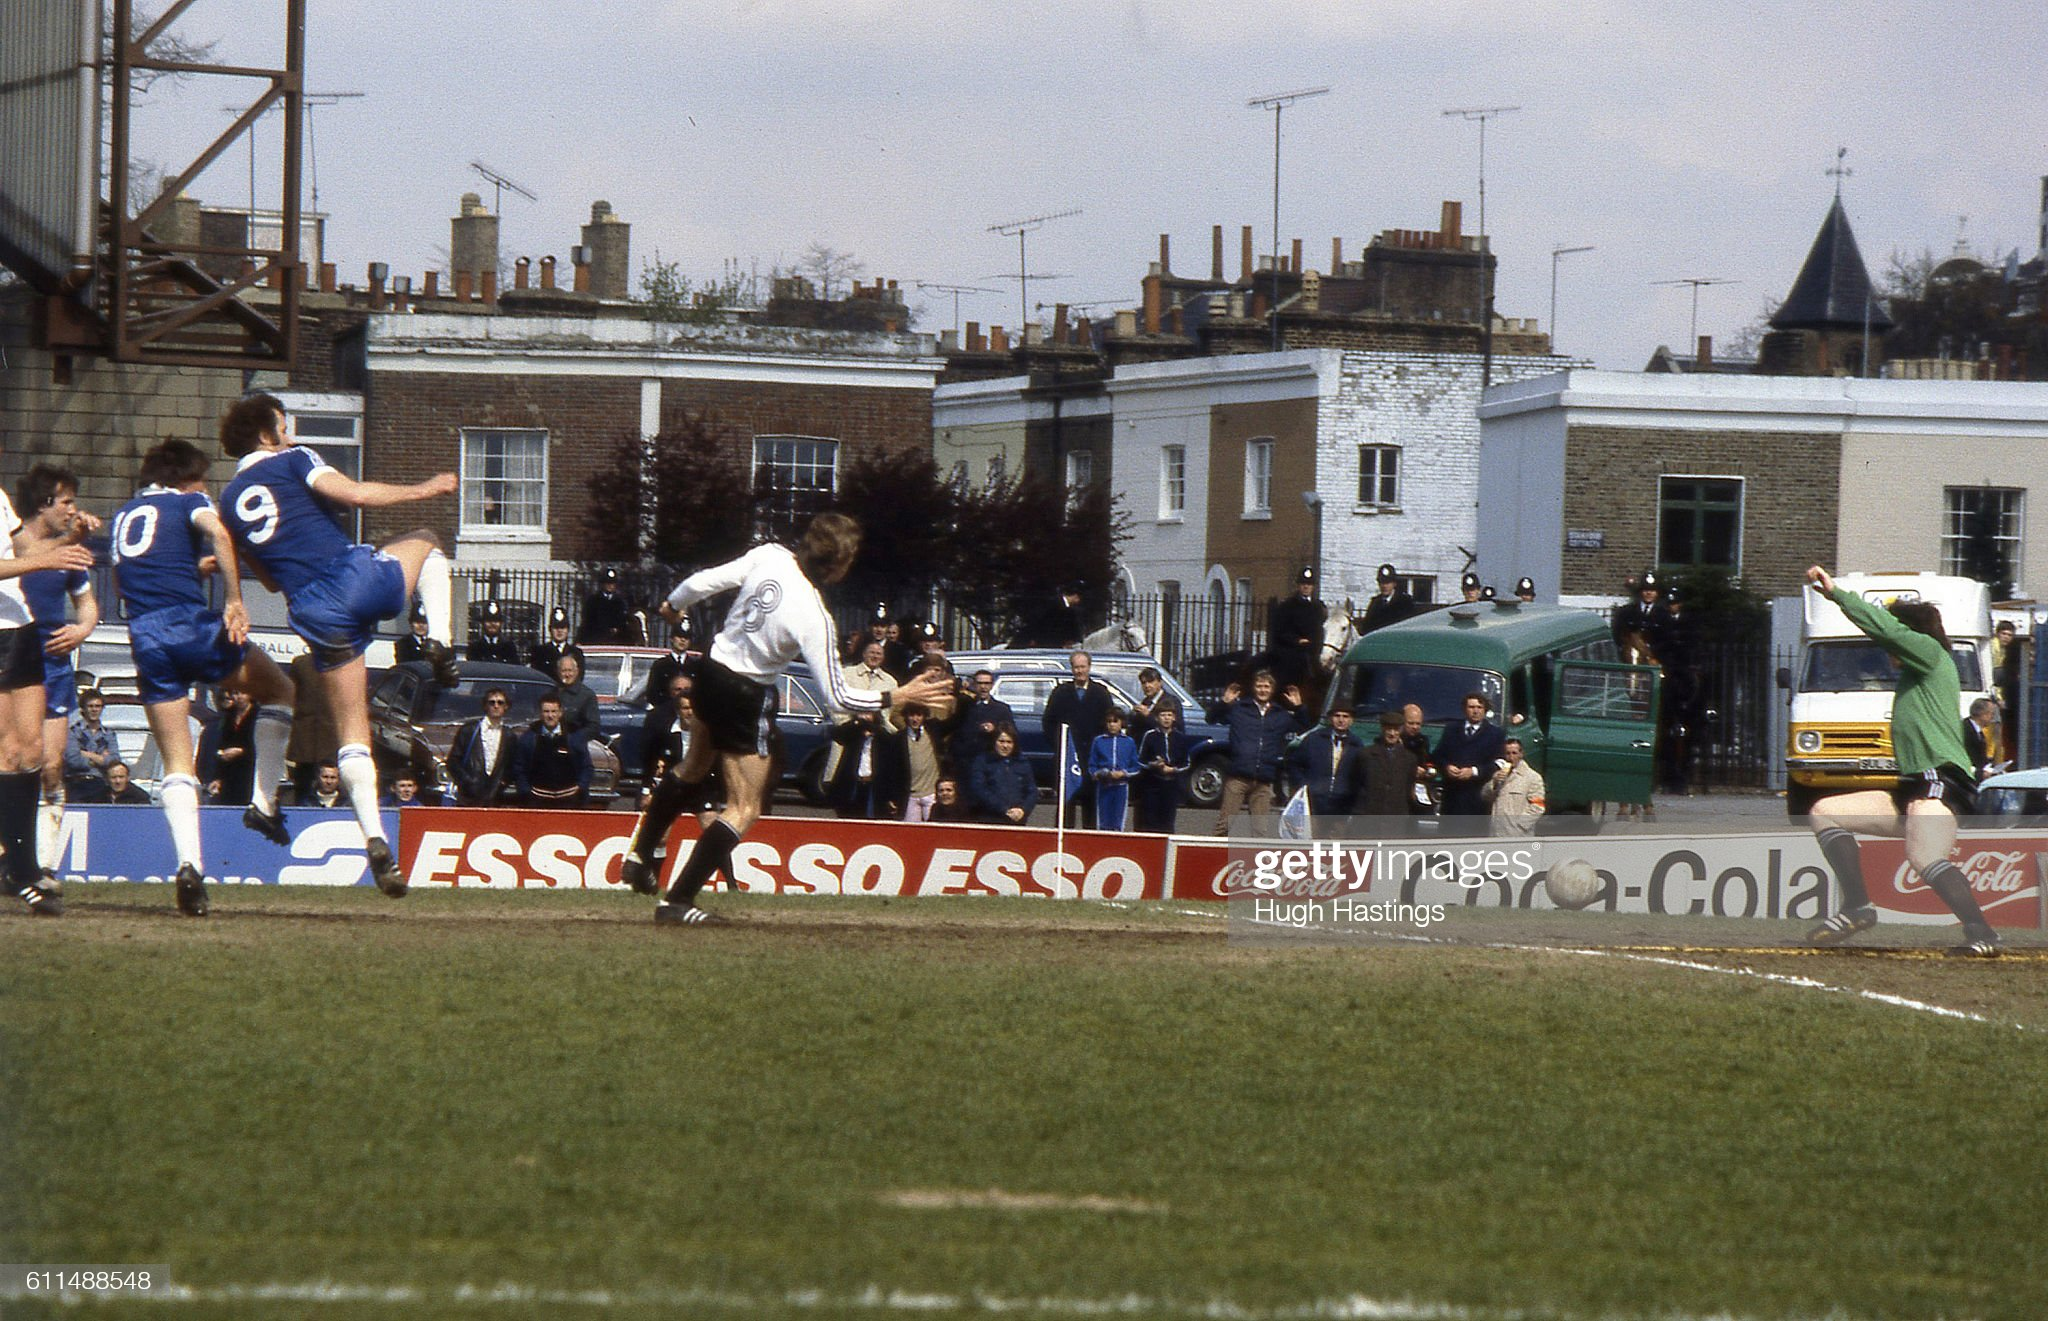 Soccer - May 5th, 1979, Stamford Bridge, London - Football League Division One - Chelsea v Ipswich Town : News Photo